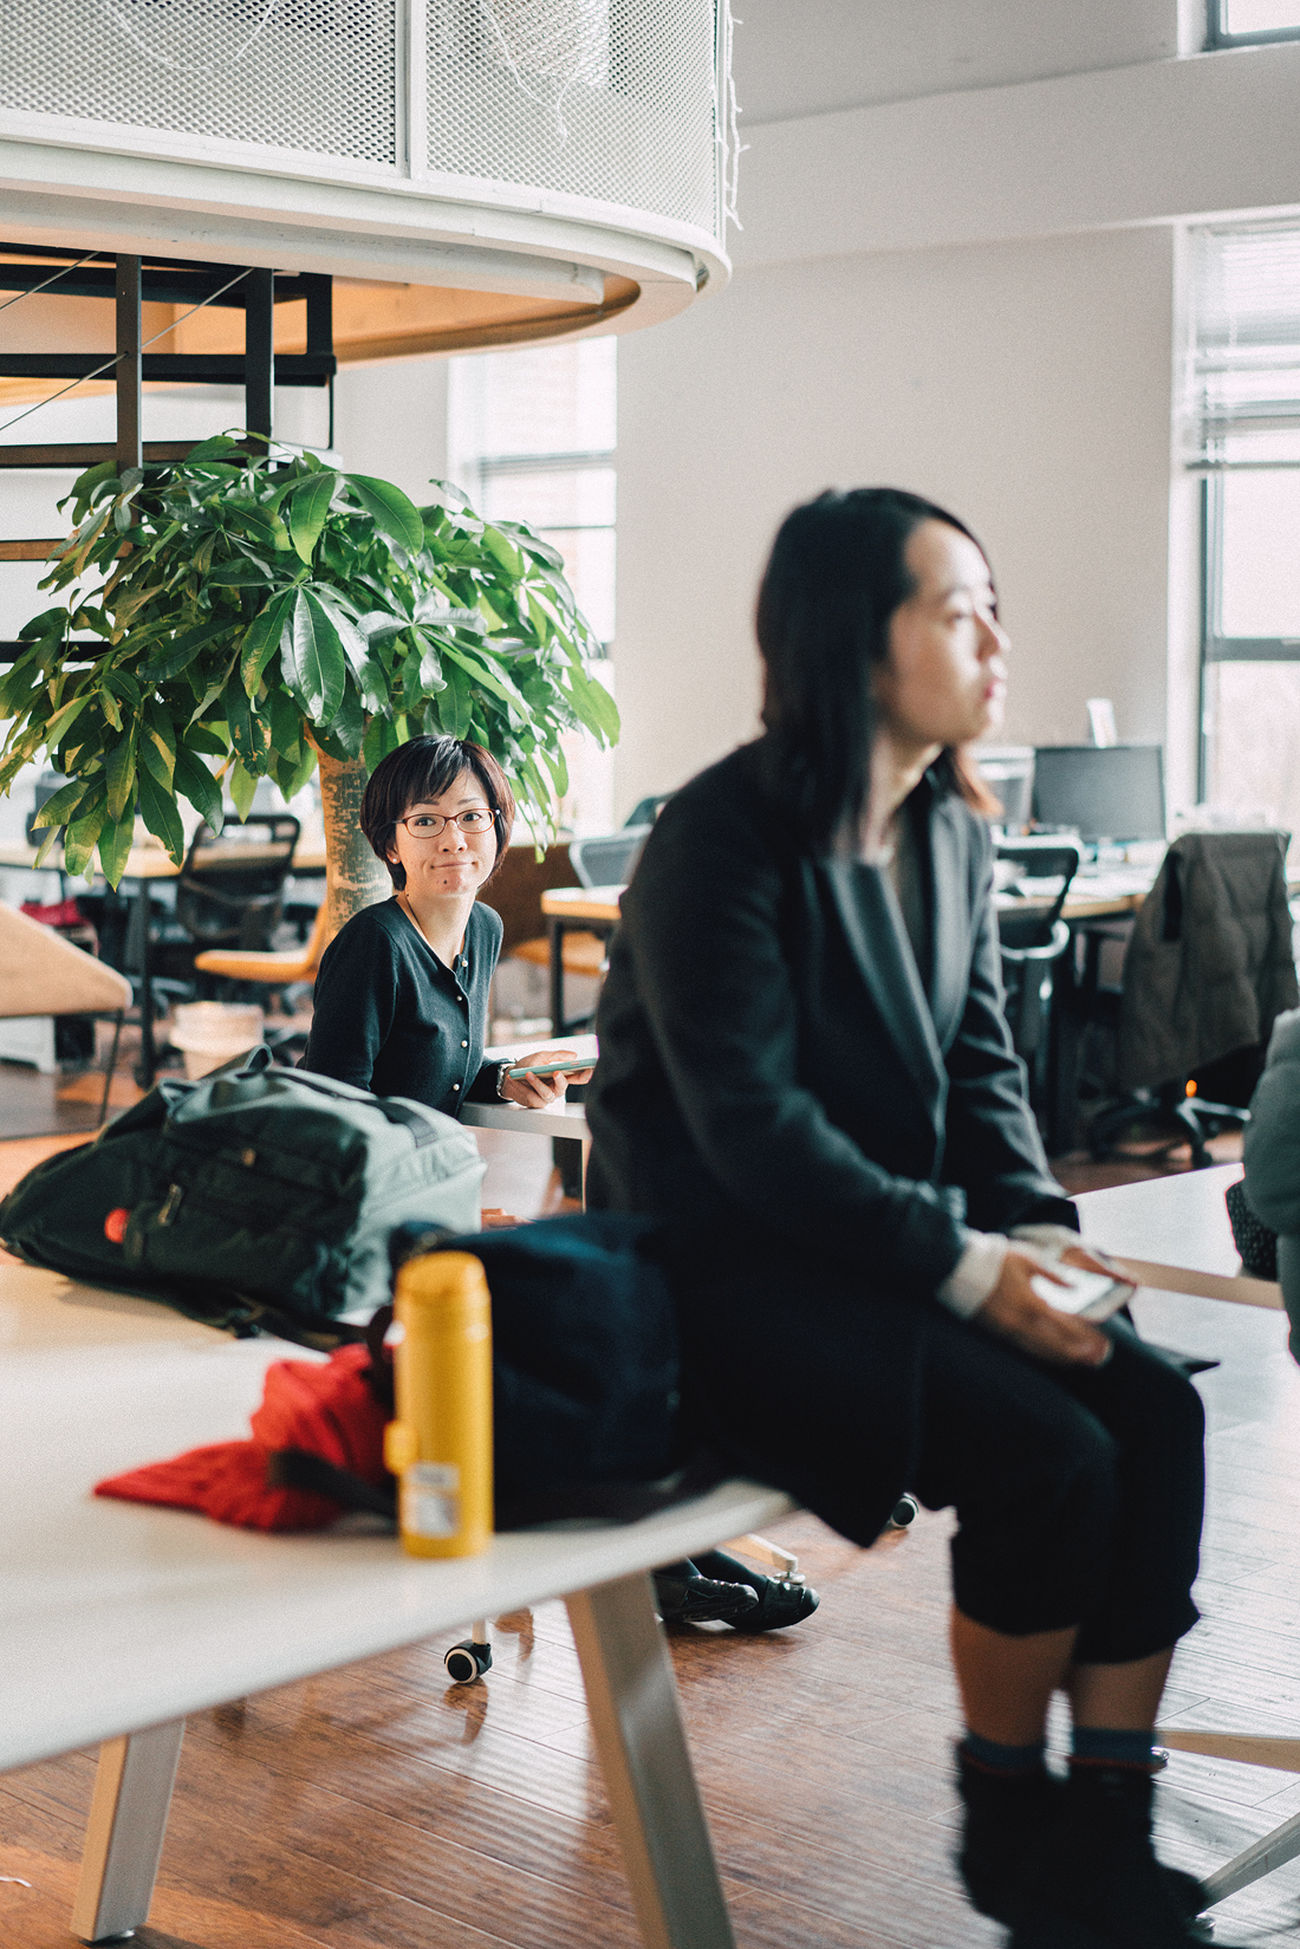 Sitting Candid Business Finance And Industry Adults Only Small Business Full Length Real People Adult People Day Relaxation Happiness Chair Indoors  Friendship Only Women Community Young Adult Smiling